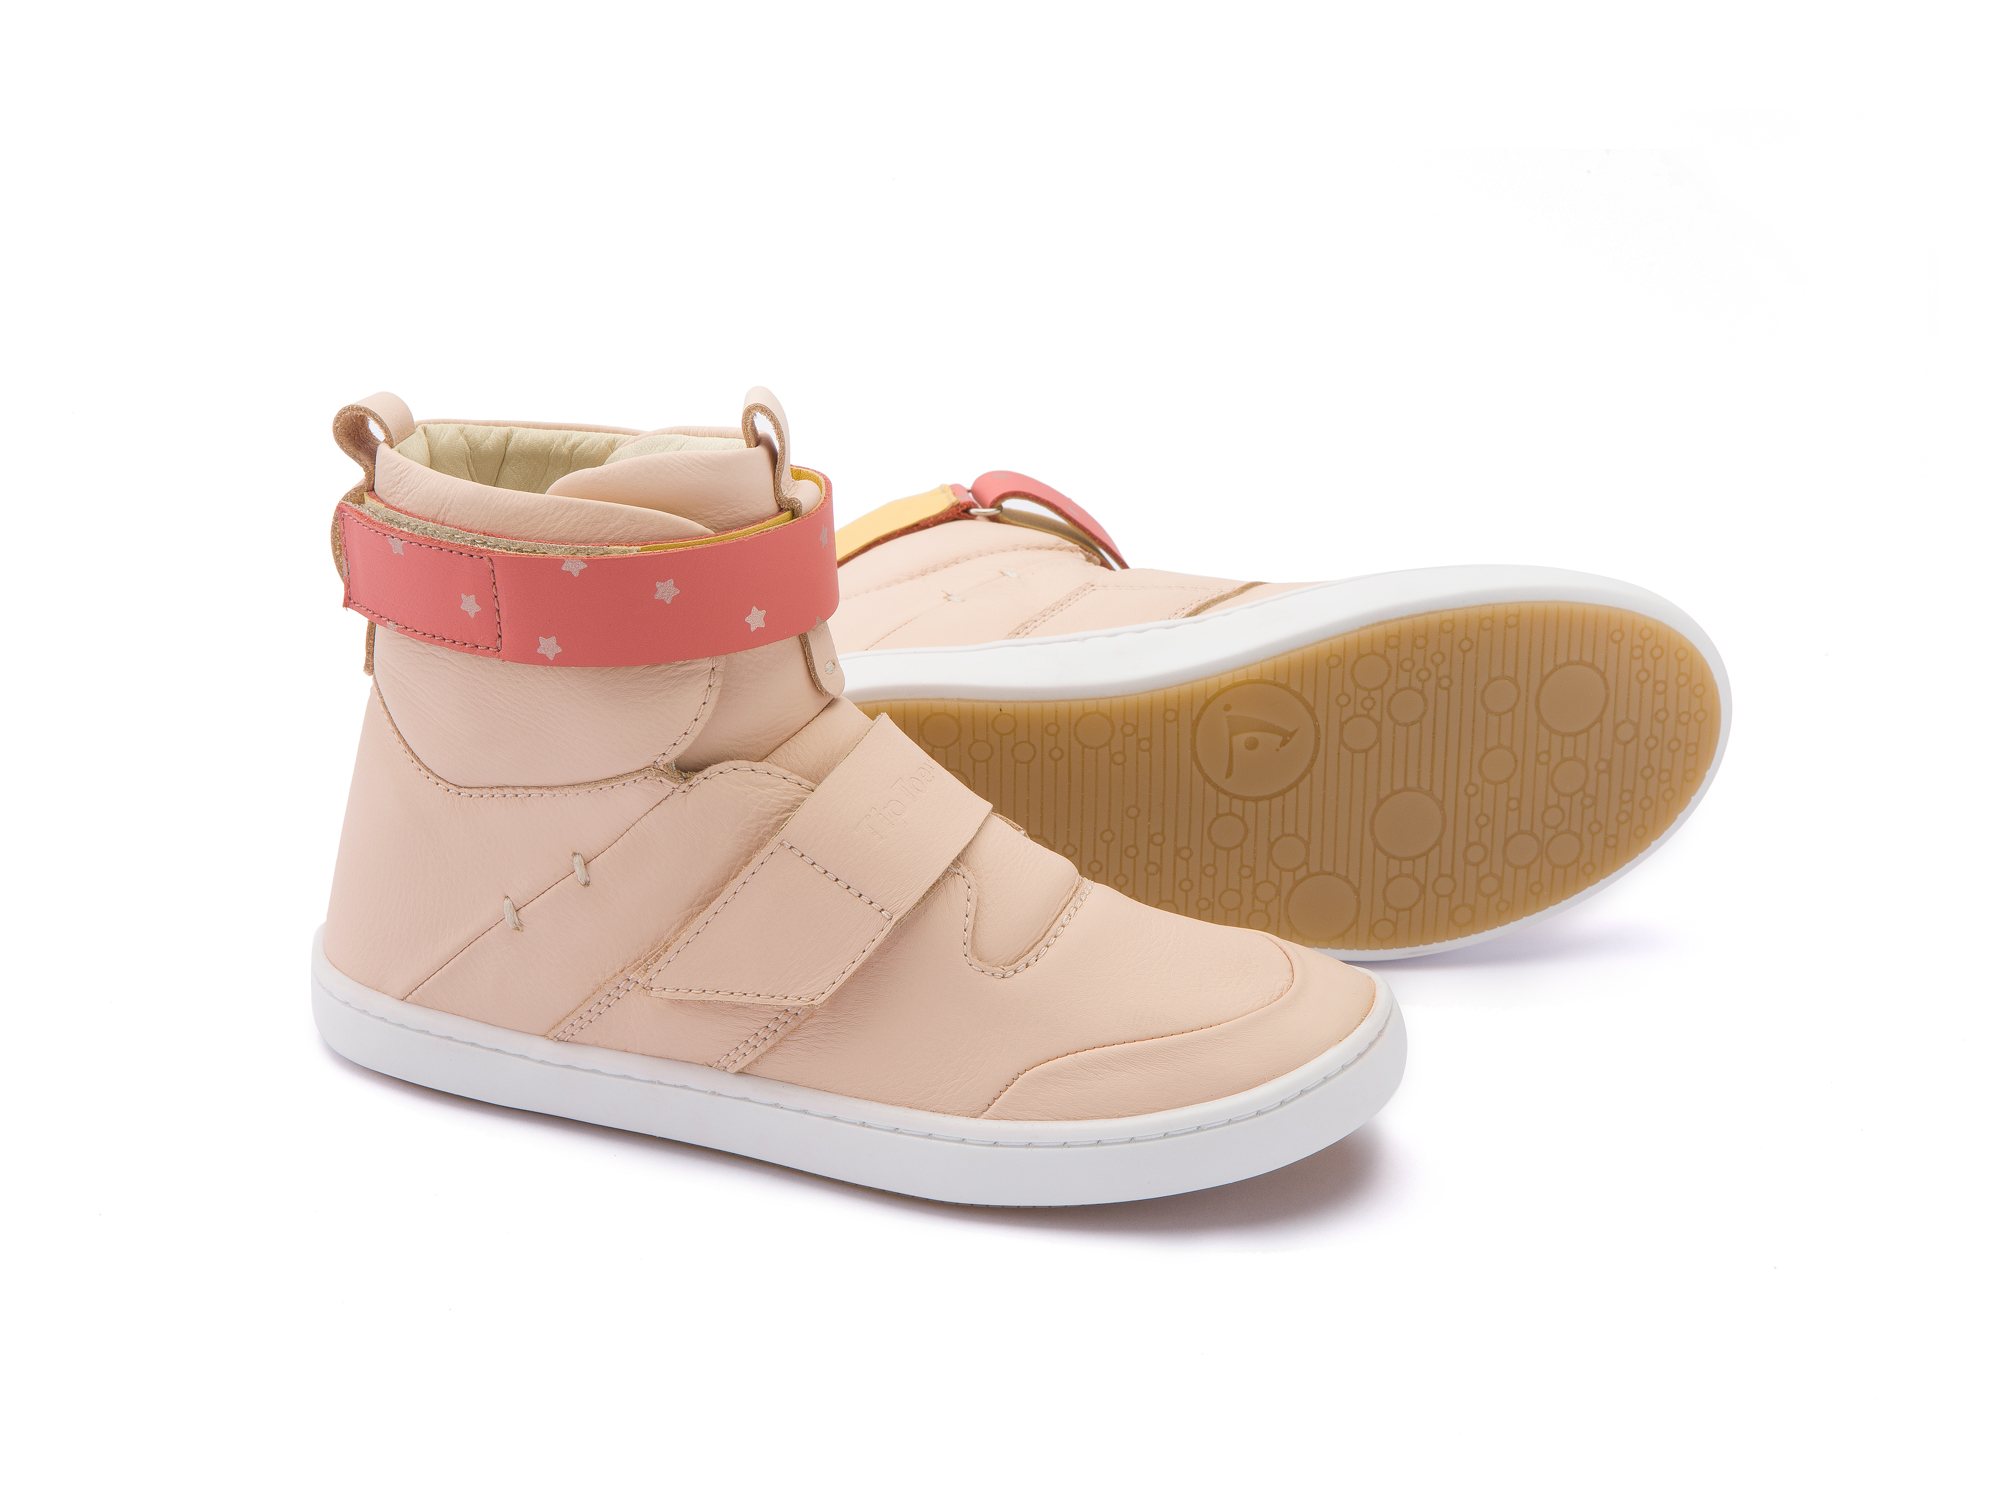 Bota Hoop Papaya Cream Junior 4 à 8 anos - 4